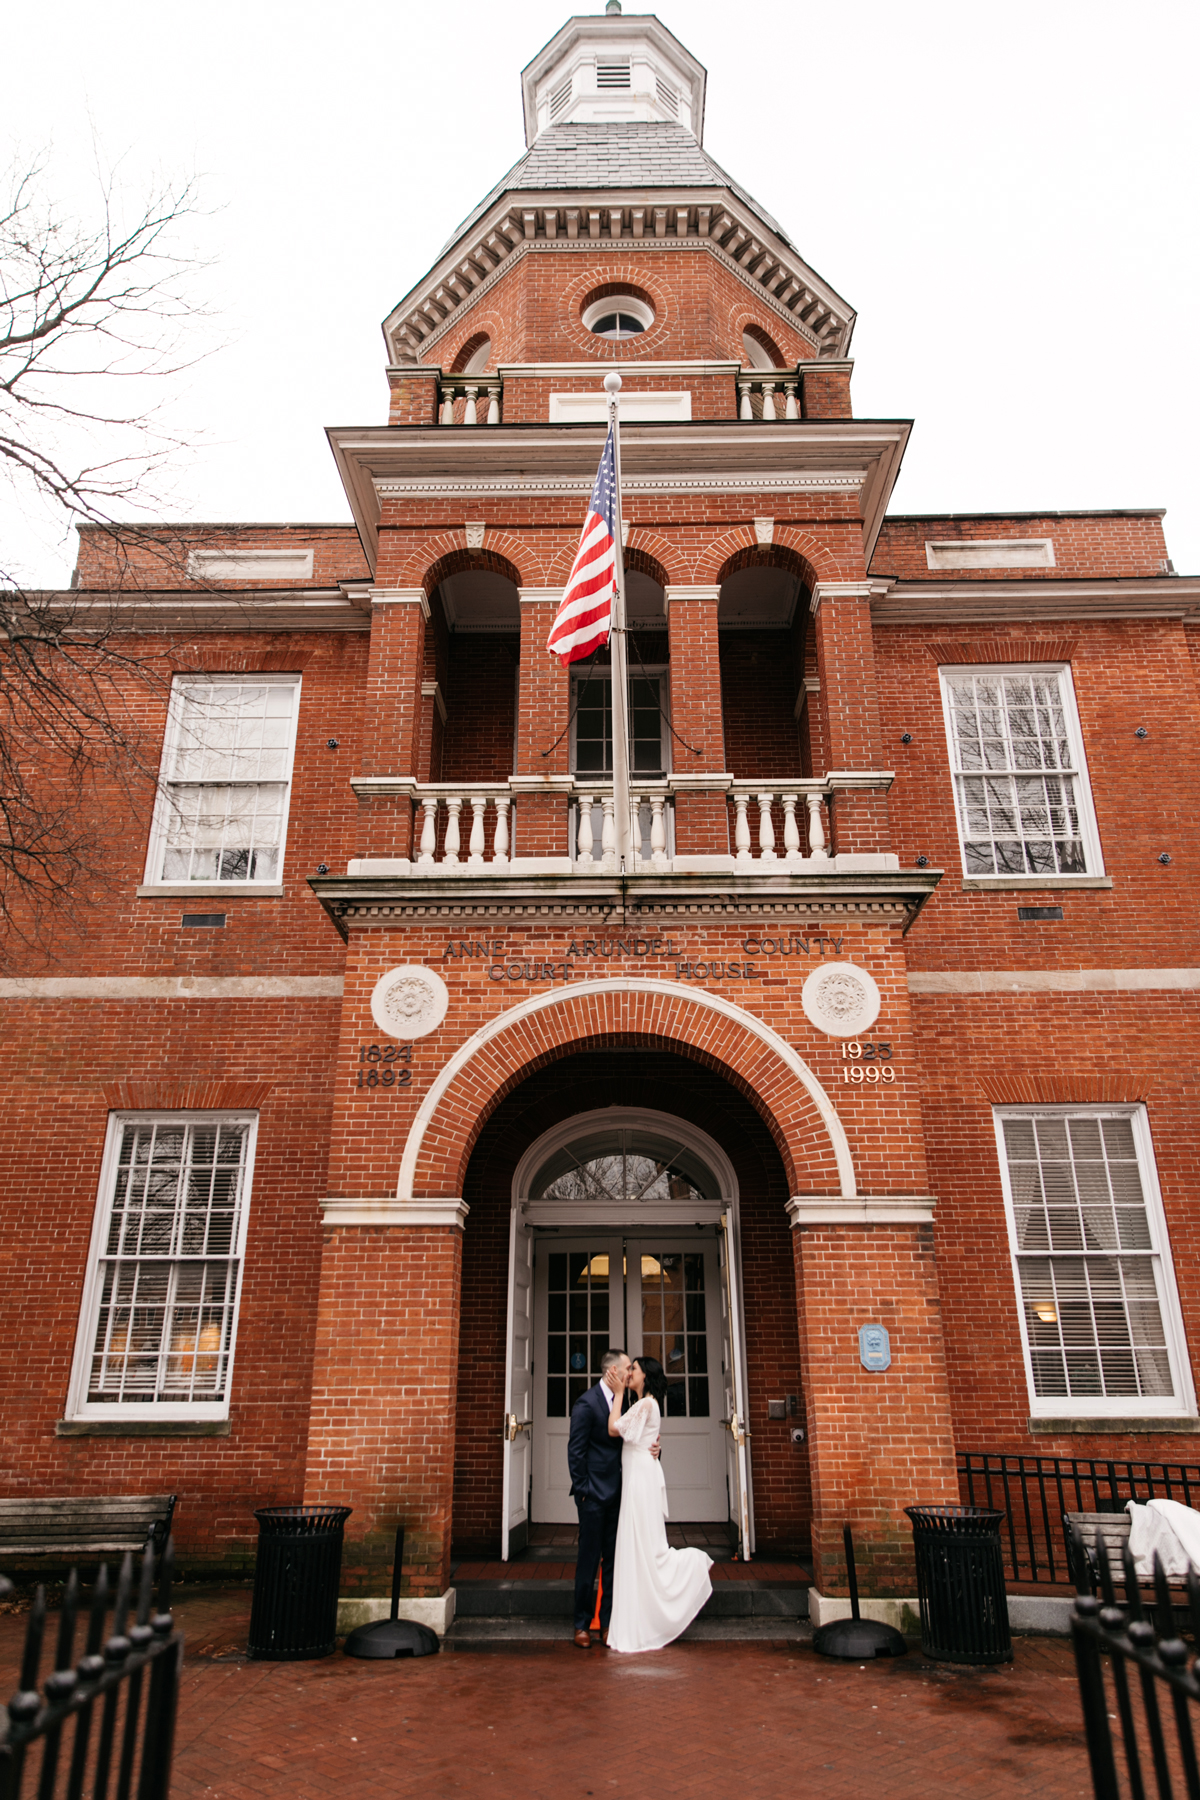 city hall wedding bride and groom kissing in front of red brick building